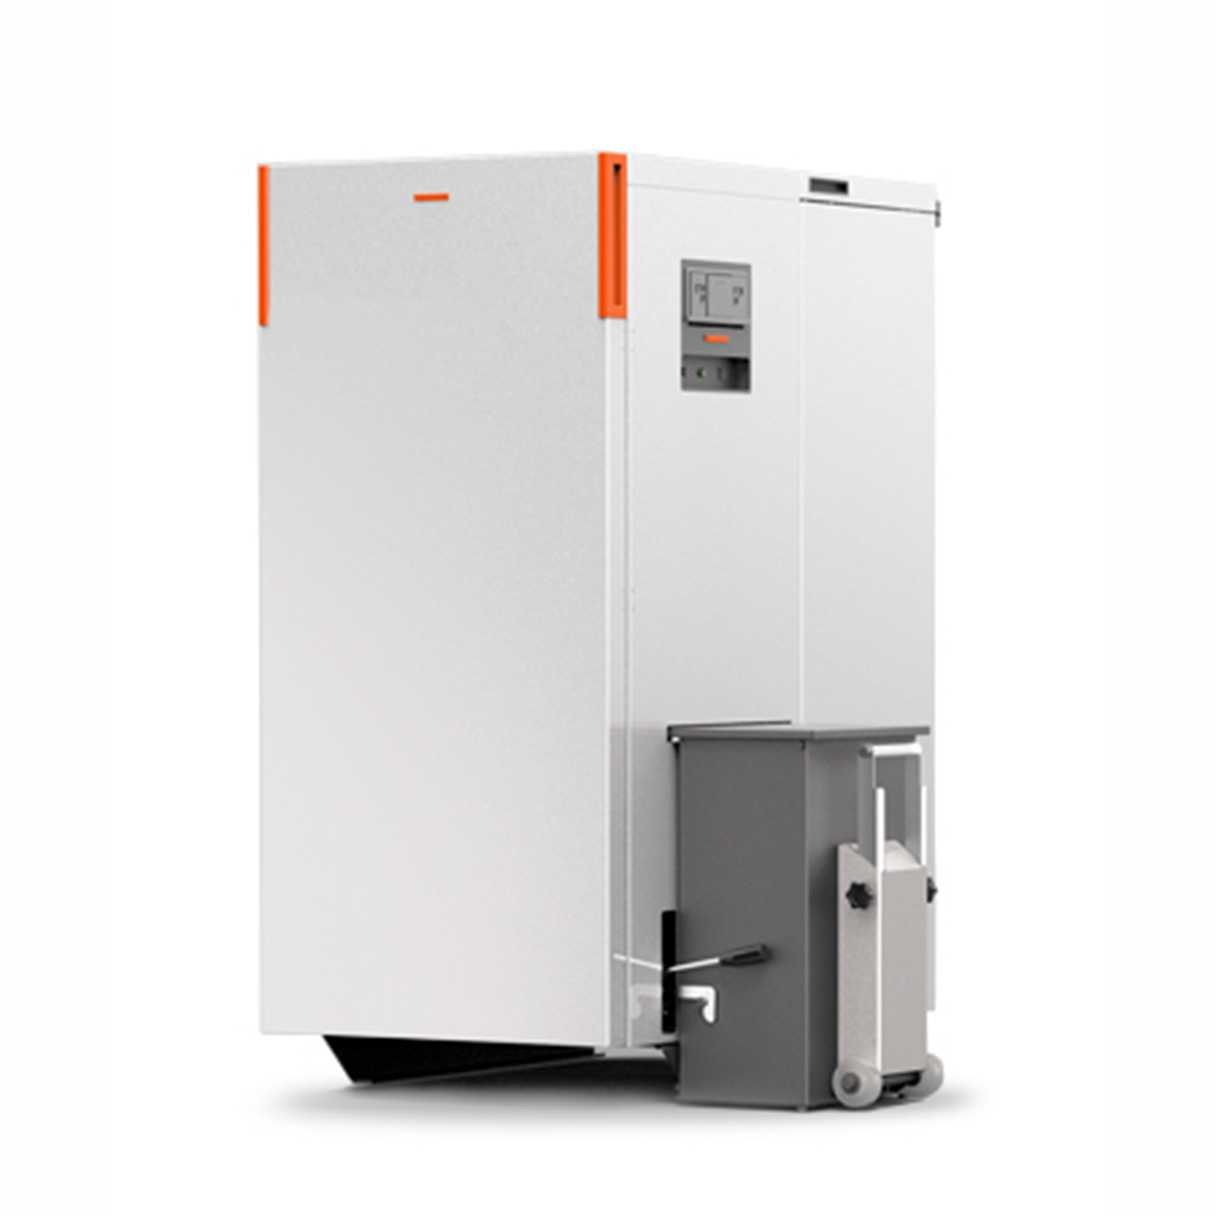 Caldaia a pellet Thermorossi Compact Matic S50 class5 silver 48,50 kW